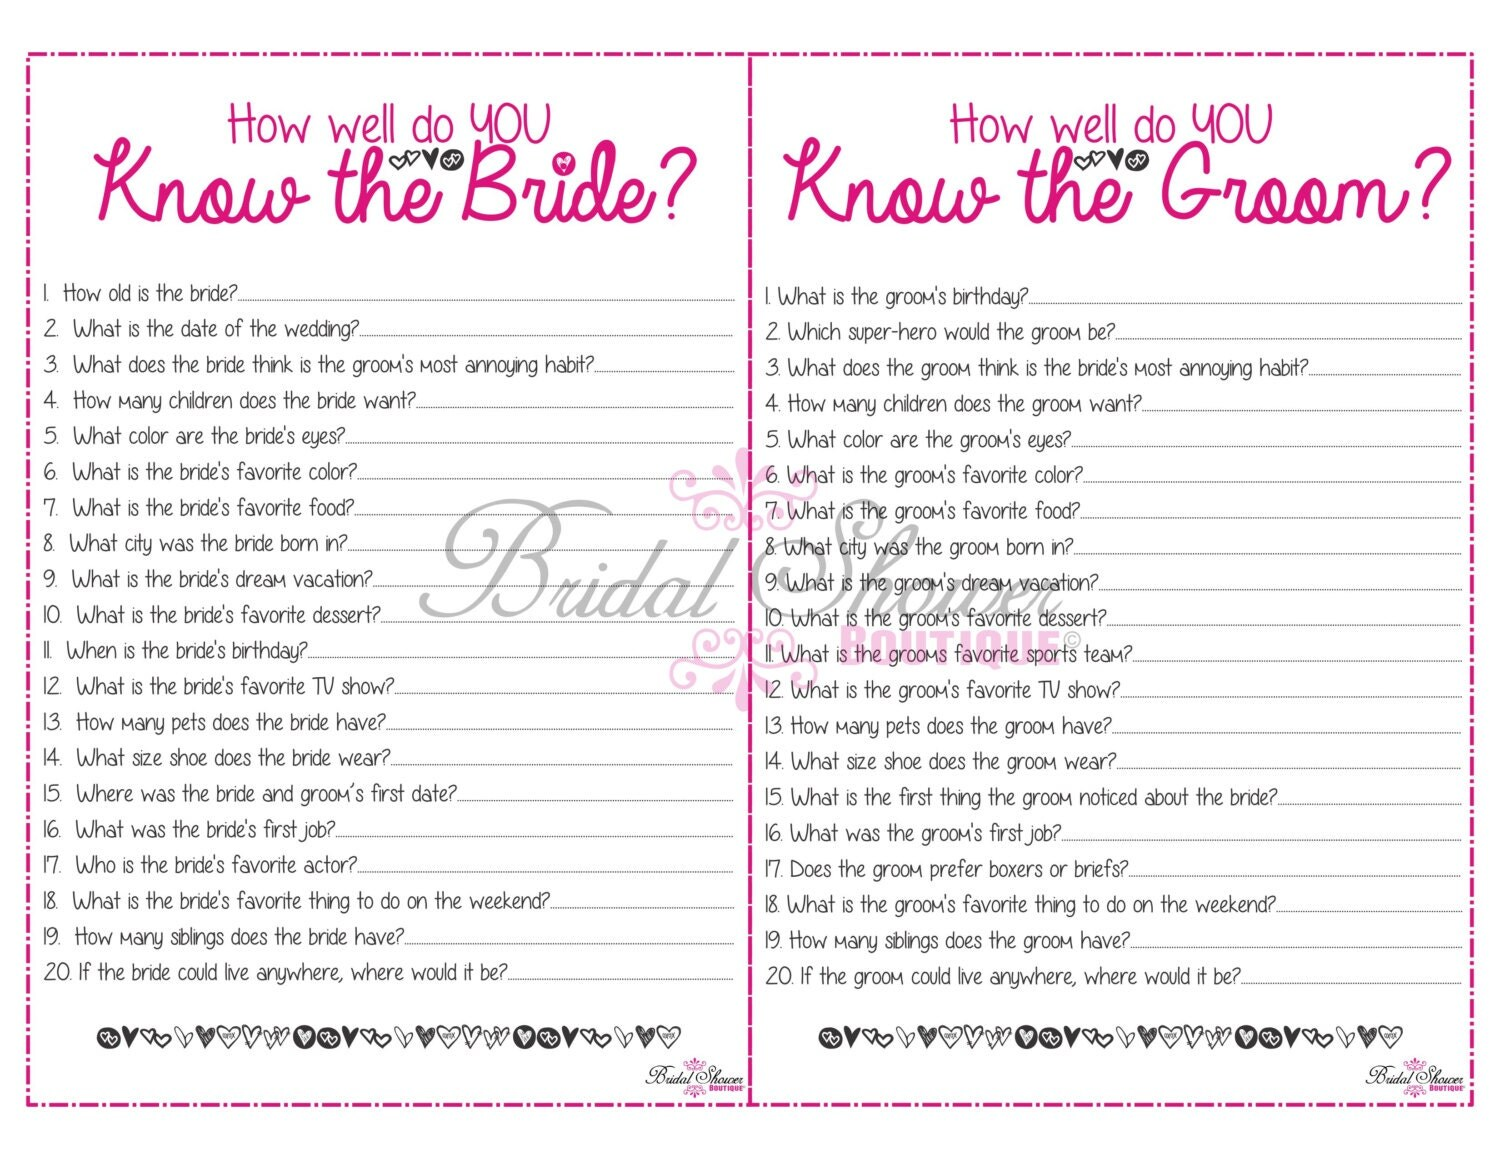 Questions to ask fiance for bridal shower